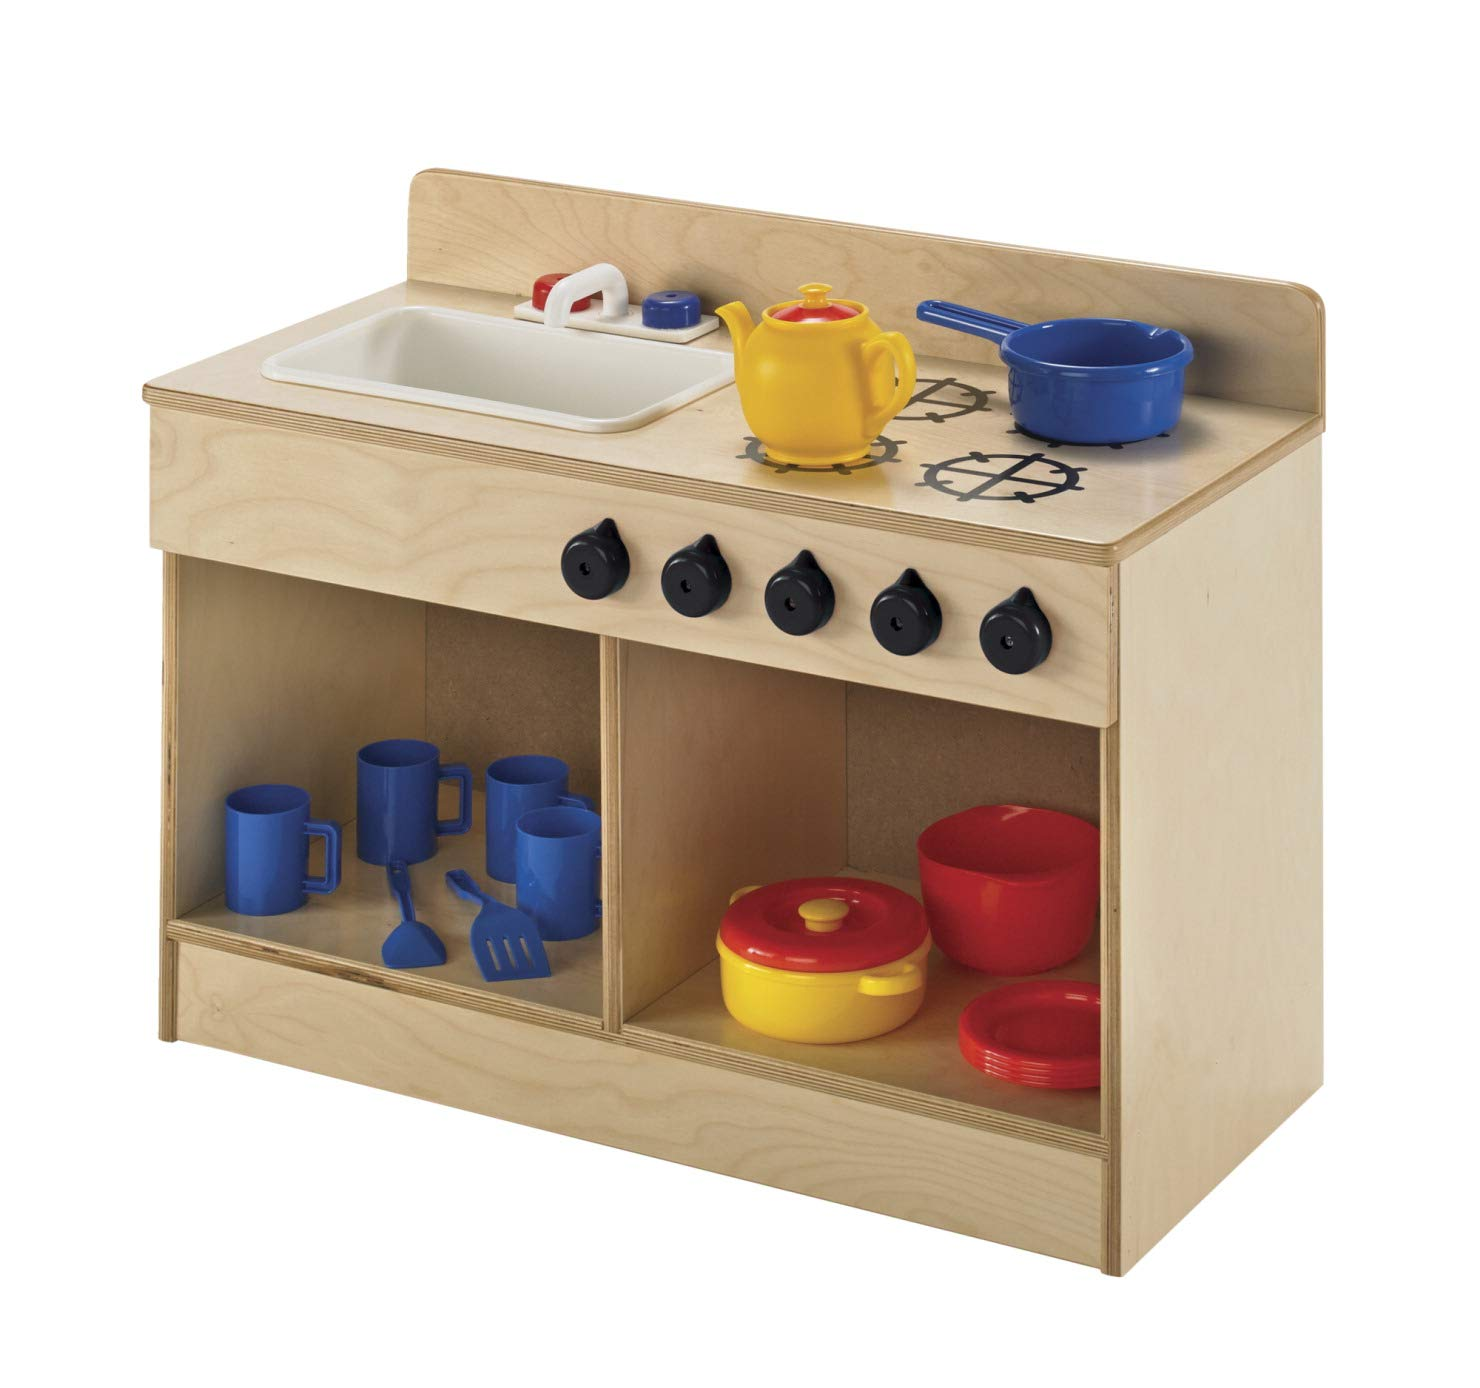 Childcraft 1491196 Toddler Sink and Stove Combo, 21.5'' Height, 13.38'' Width, 29.5'' Length, Natural Wood by Childcraft (Image #5)